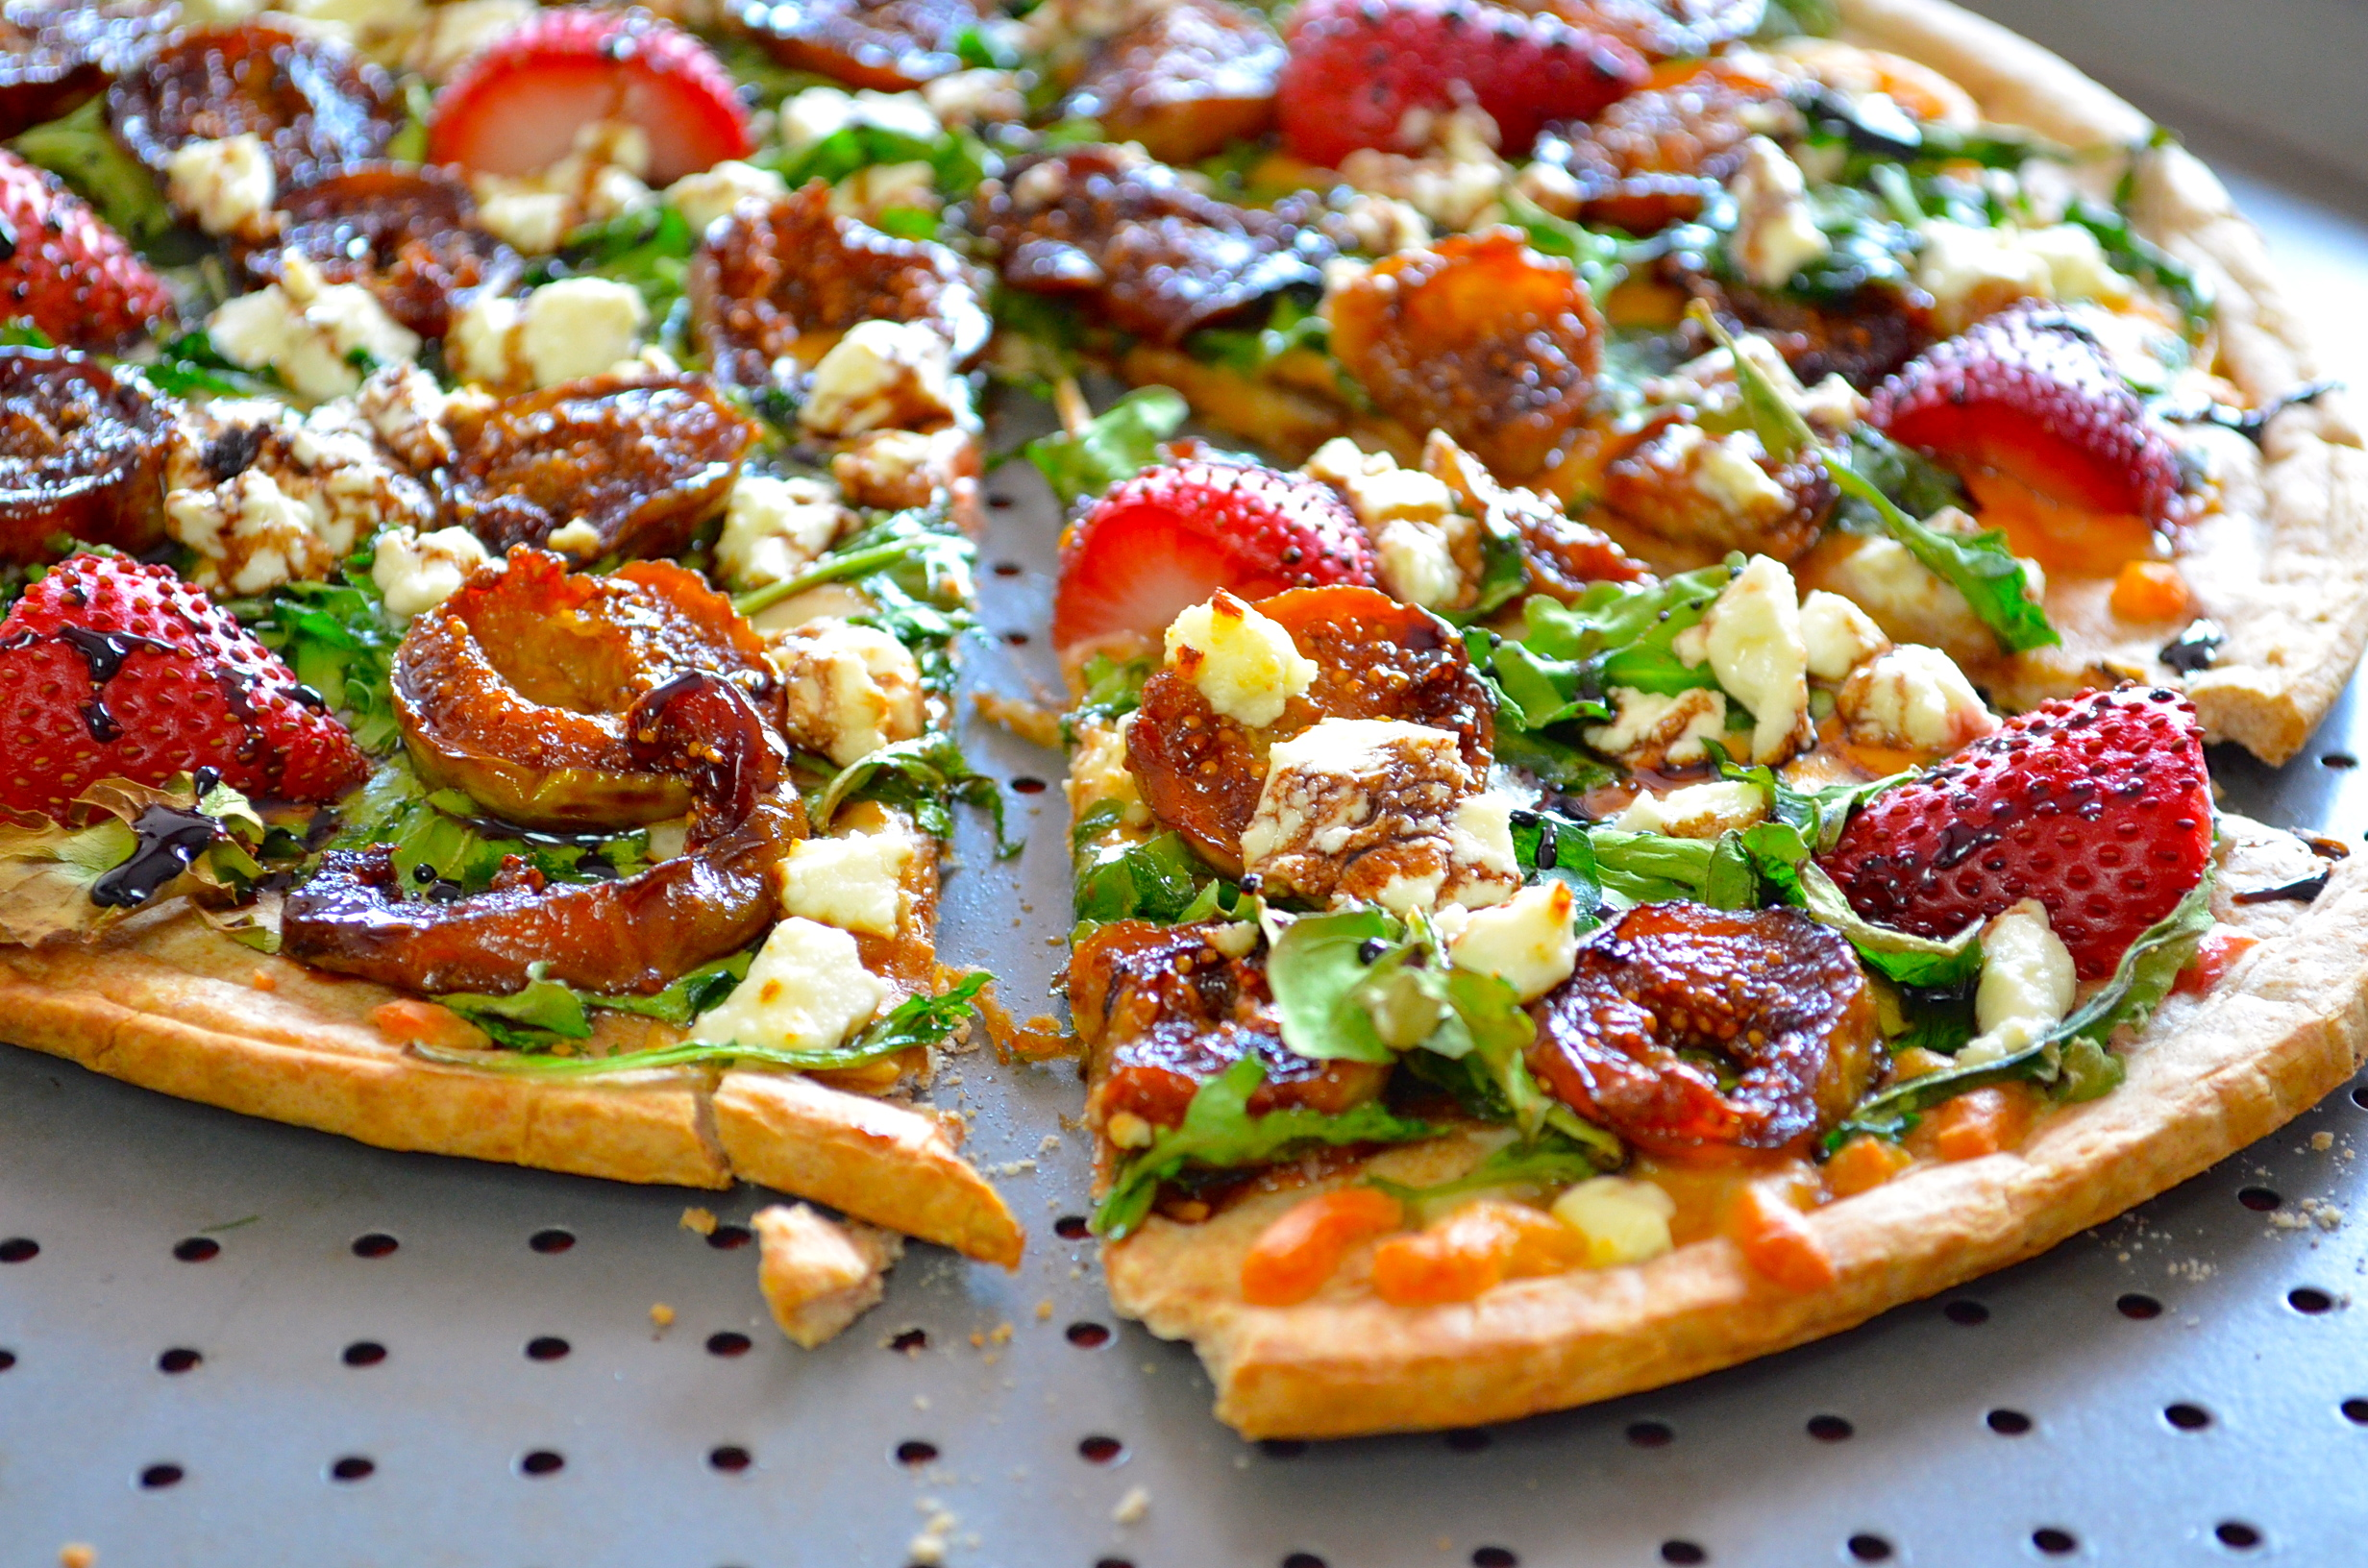 Caramelized Figs & Goat's Cheese Pizza With Balsamic Glaze